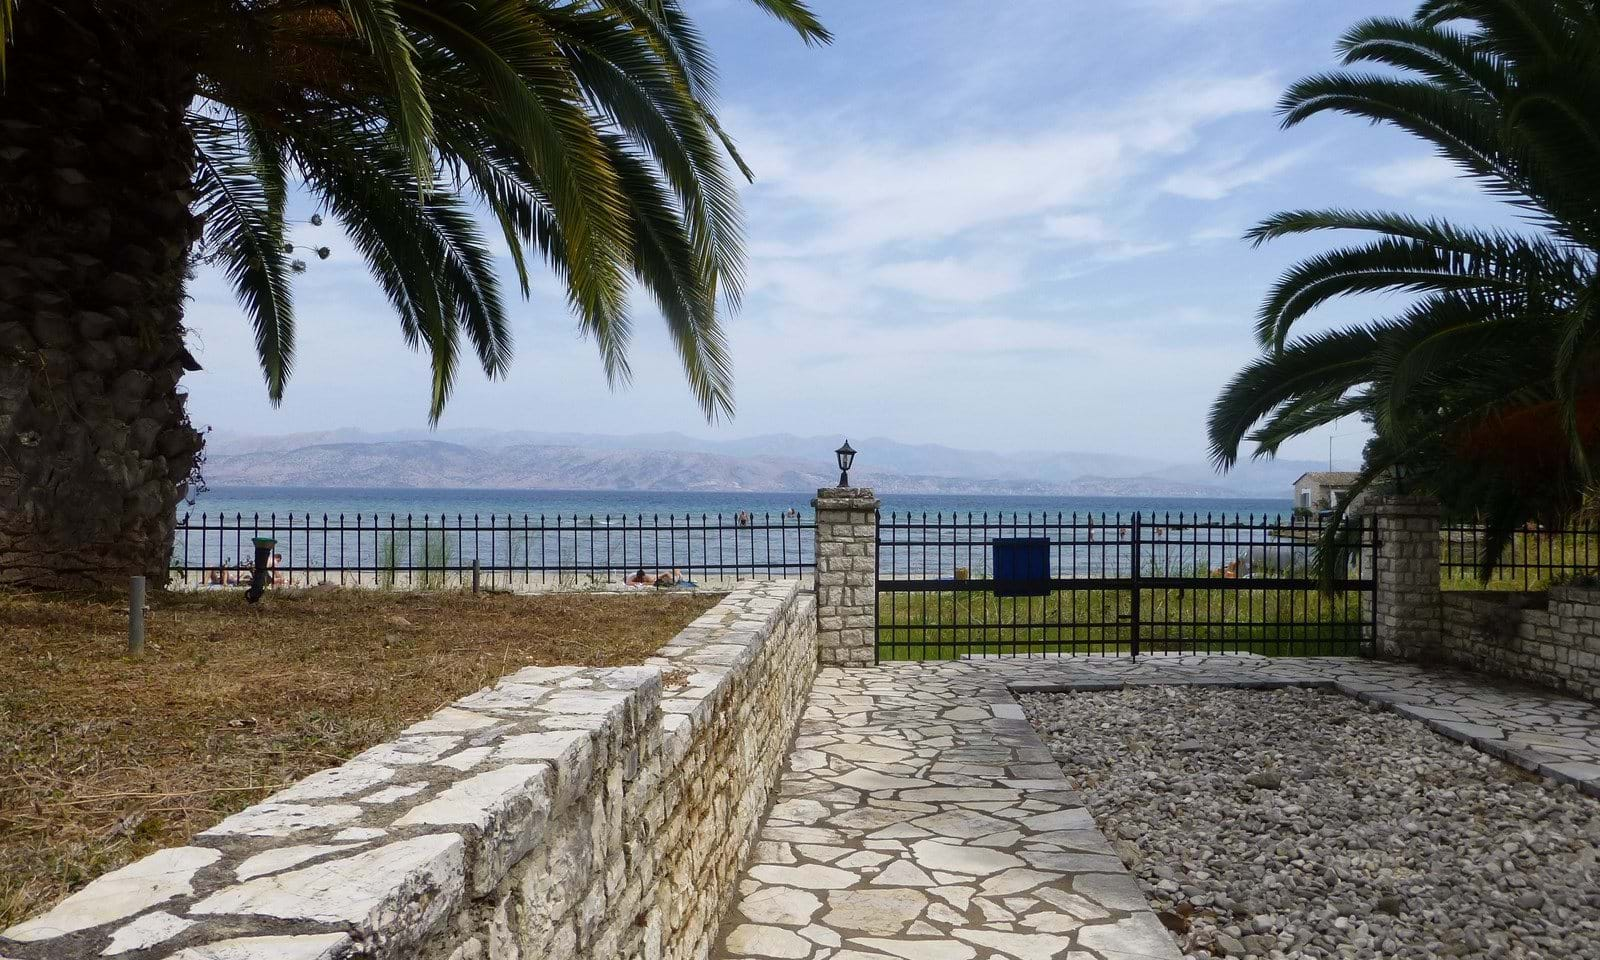 On the beach property for sale in Corfu